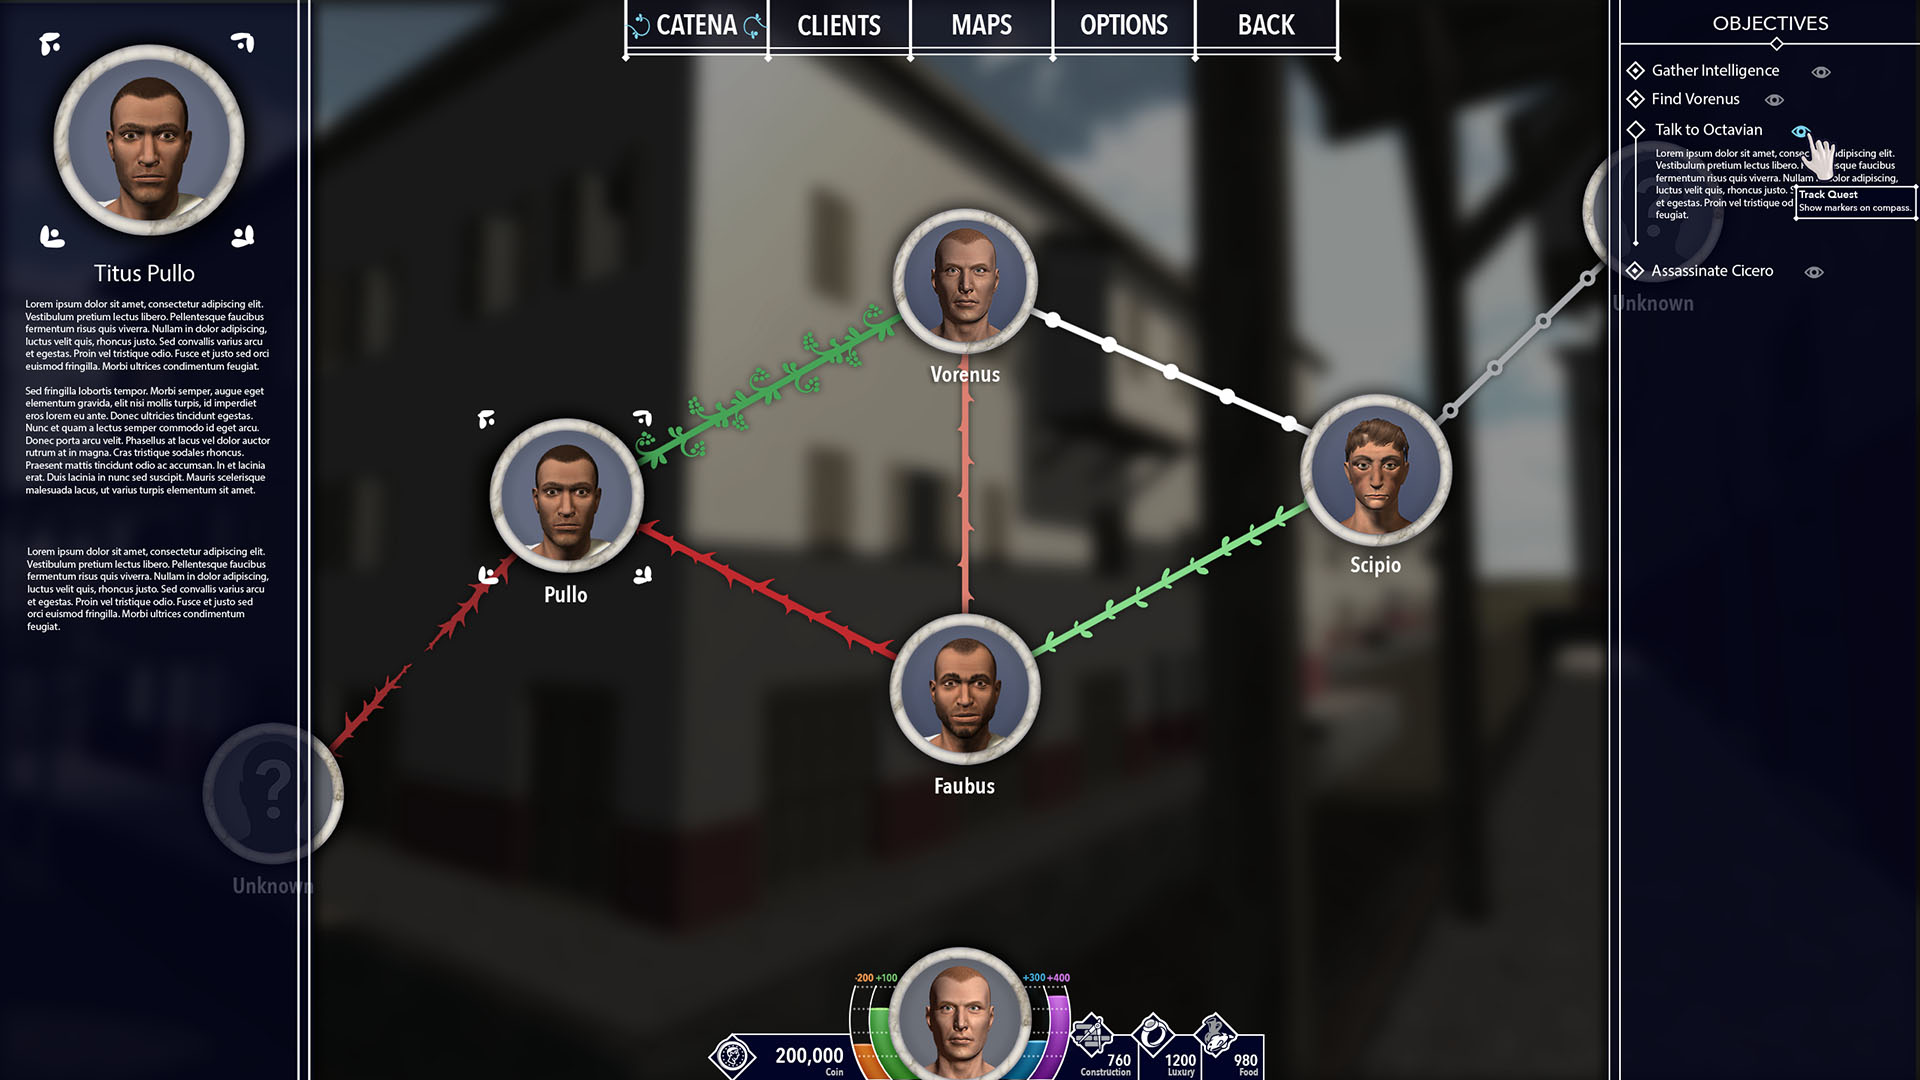 """The """"Catena"""" (Chain) system maps the social links between the player and other characters and they grow and deteriorate."""